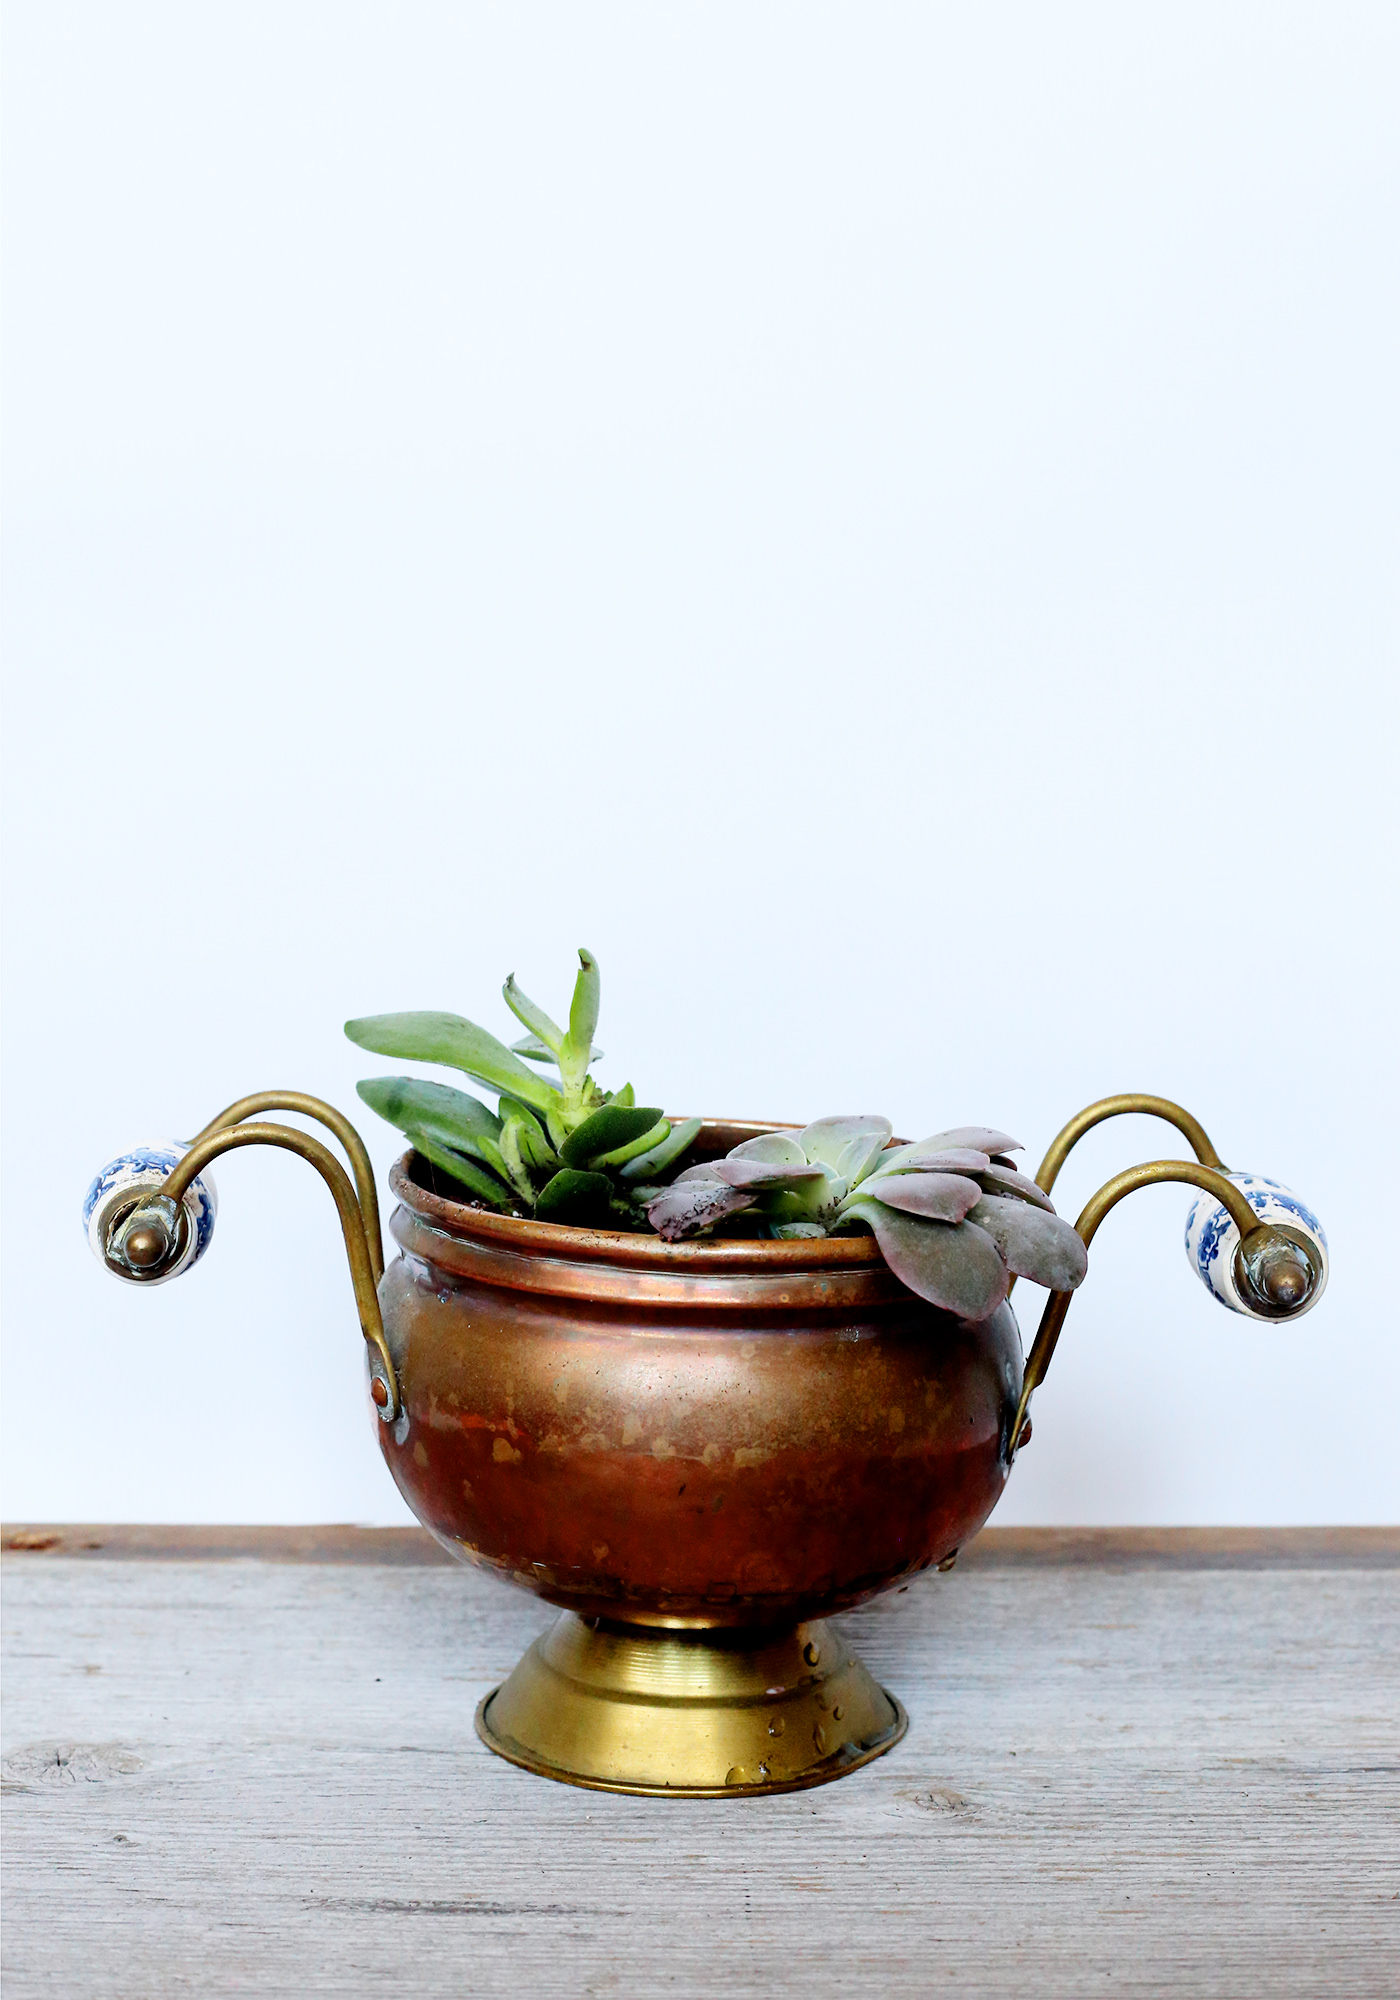 A thrifted copper footed dish is the perfect planter for some vibrant green succulents!